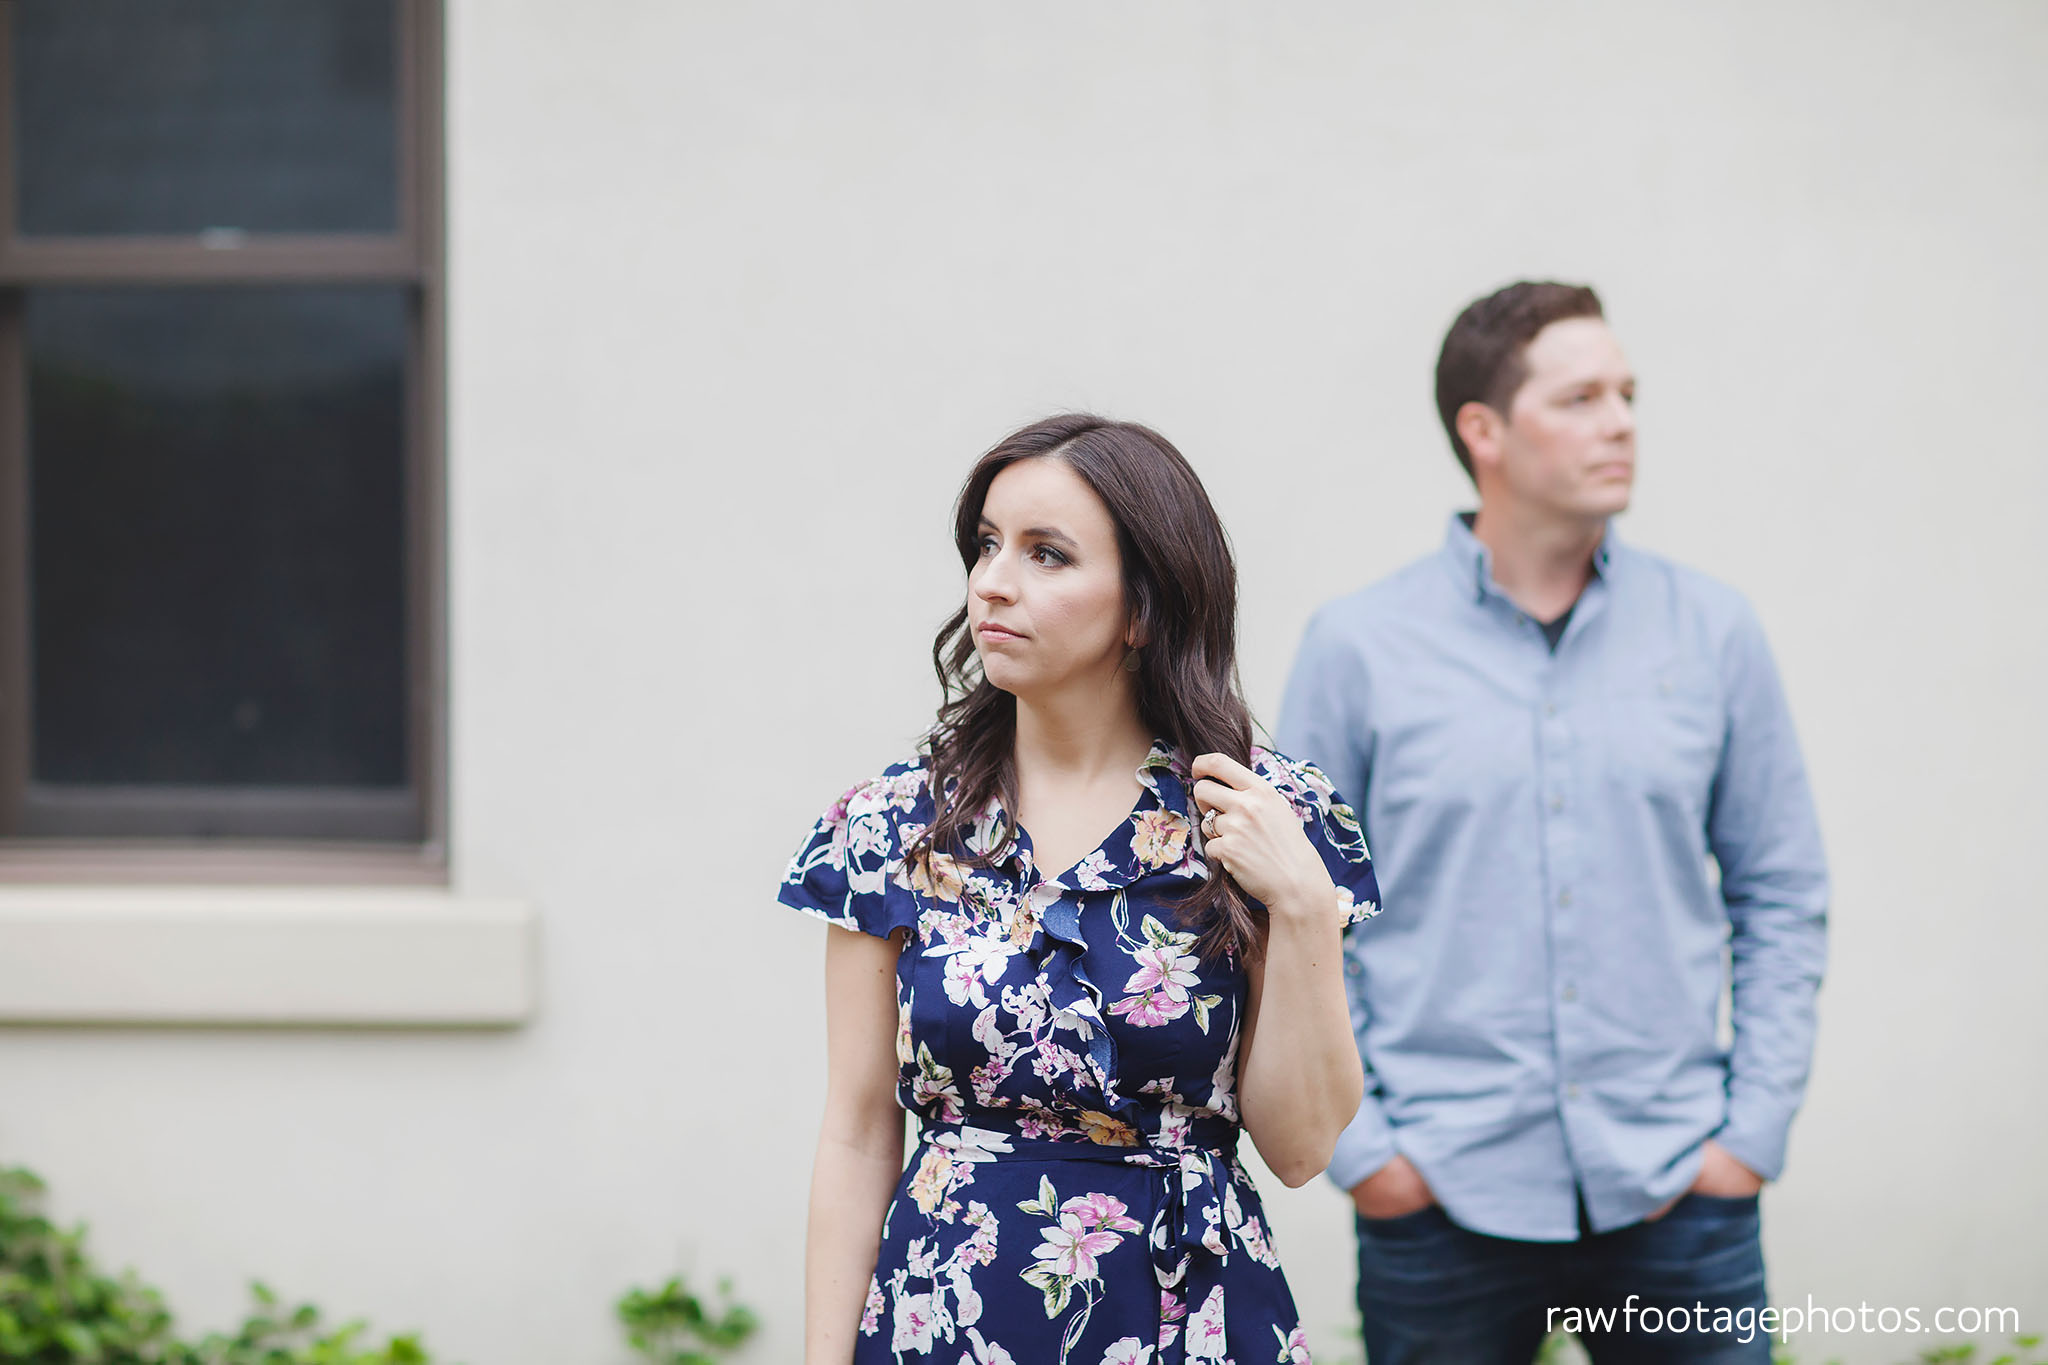 london_ontario_wedding_photographer-raw_footage_photography-engagement_session-campus_session-kings_college-uwo-spring_blooms013.jpg